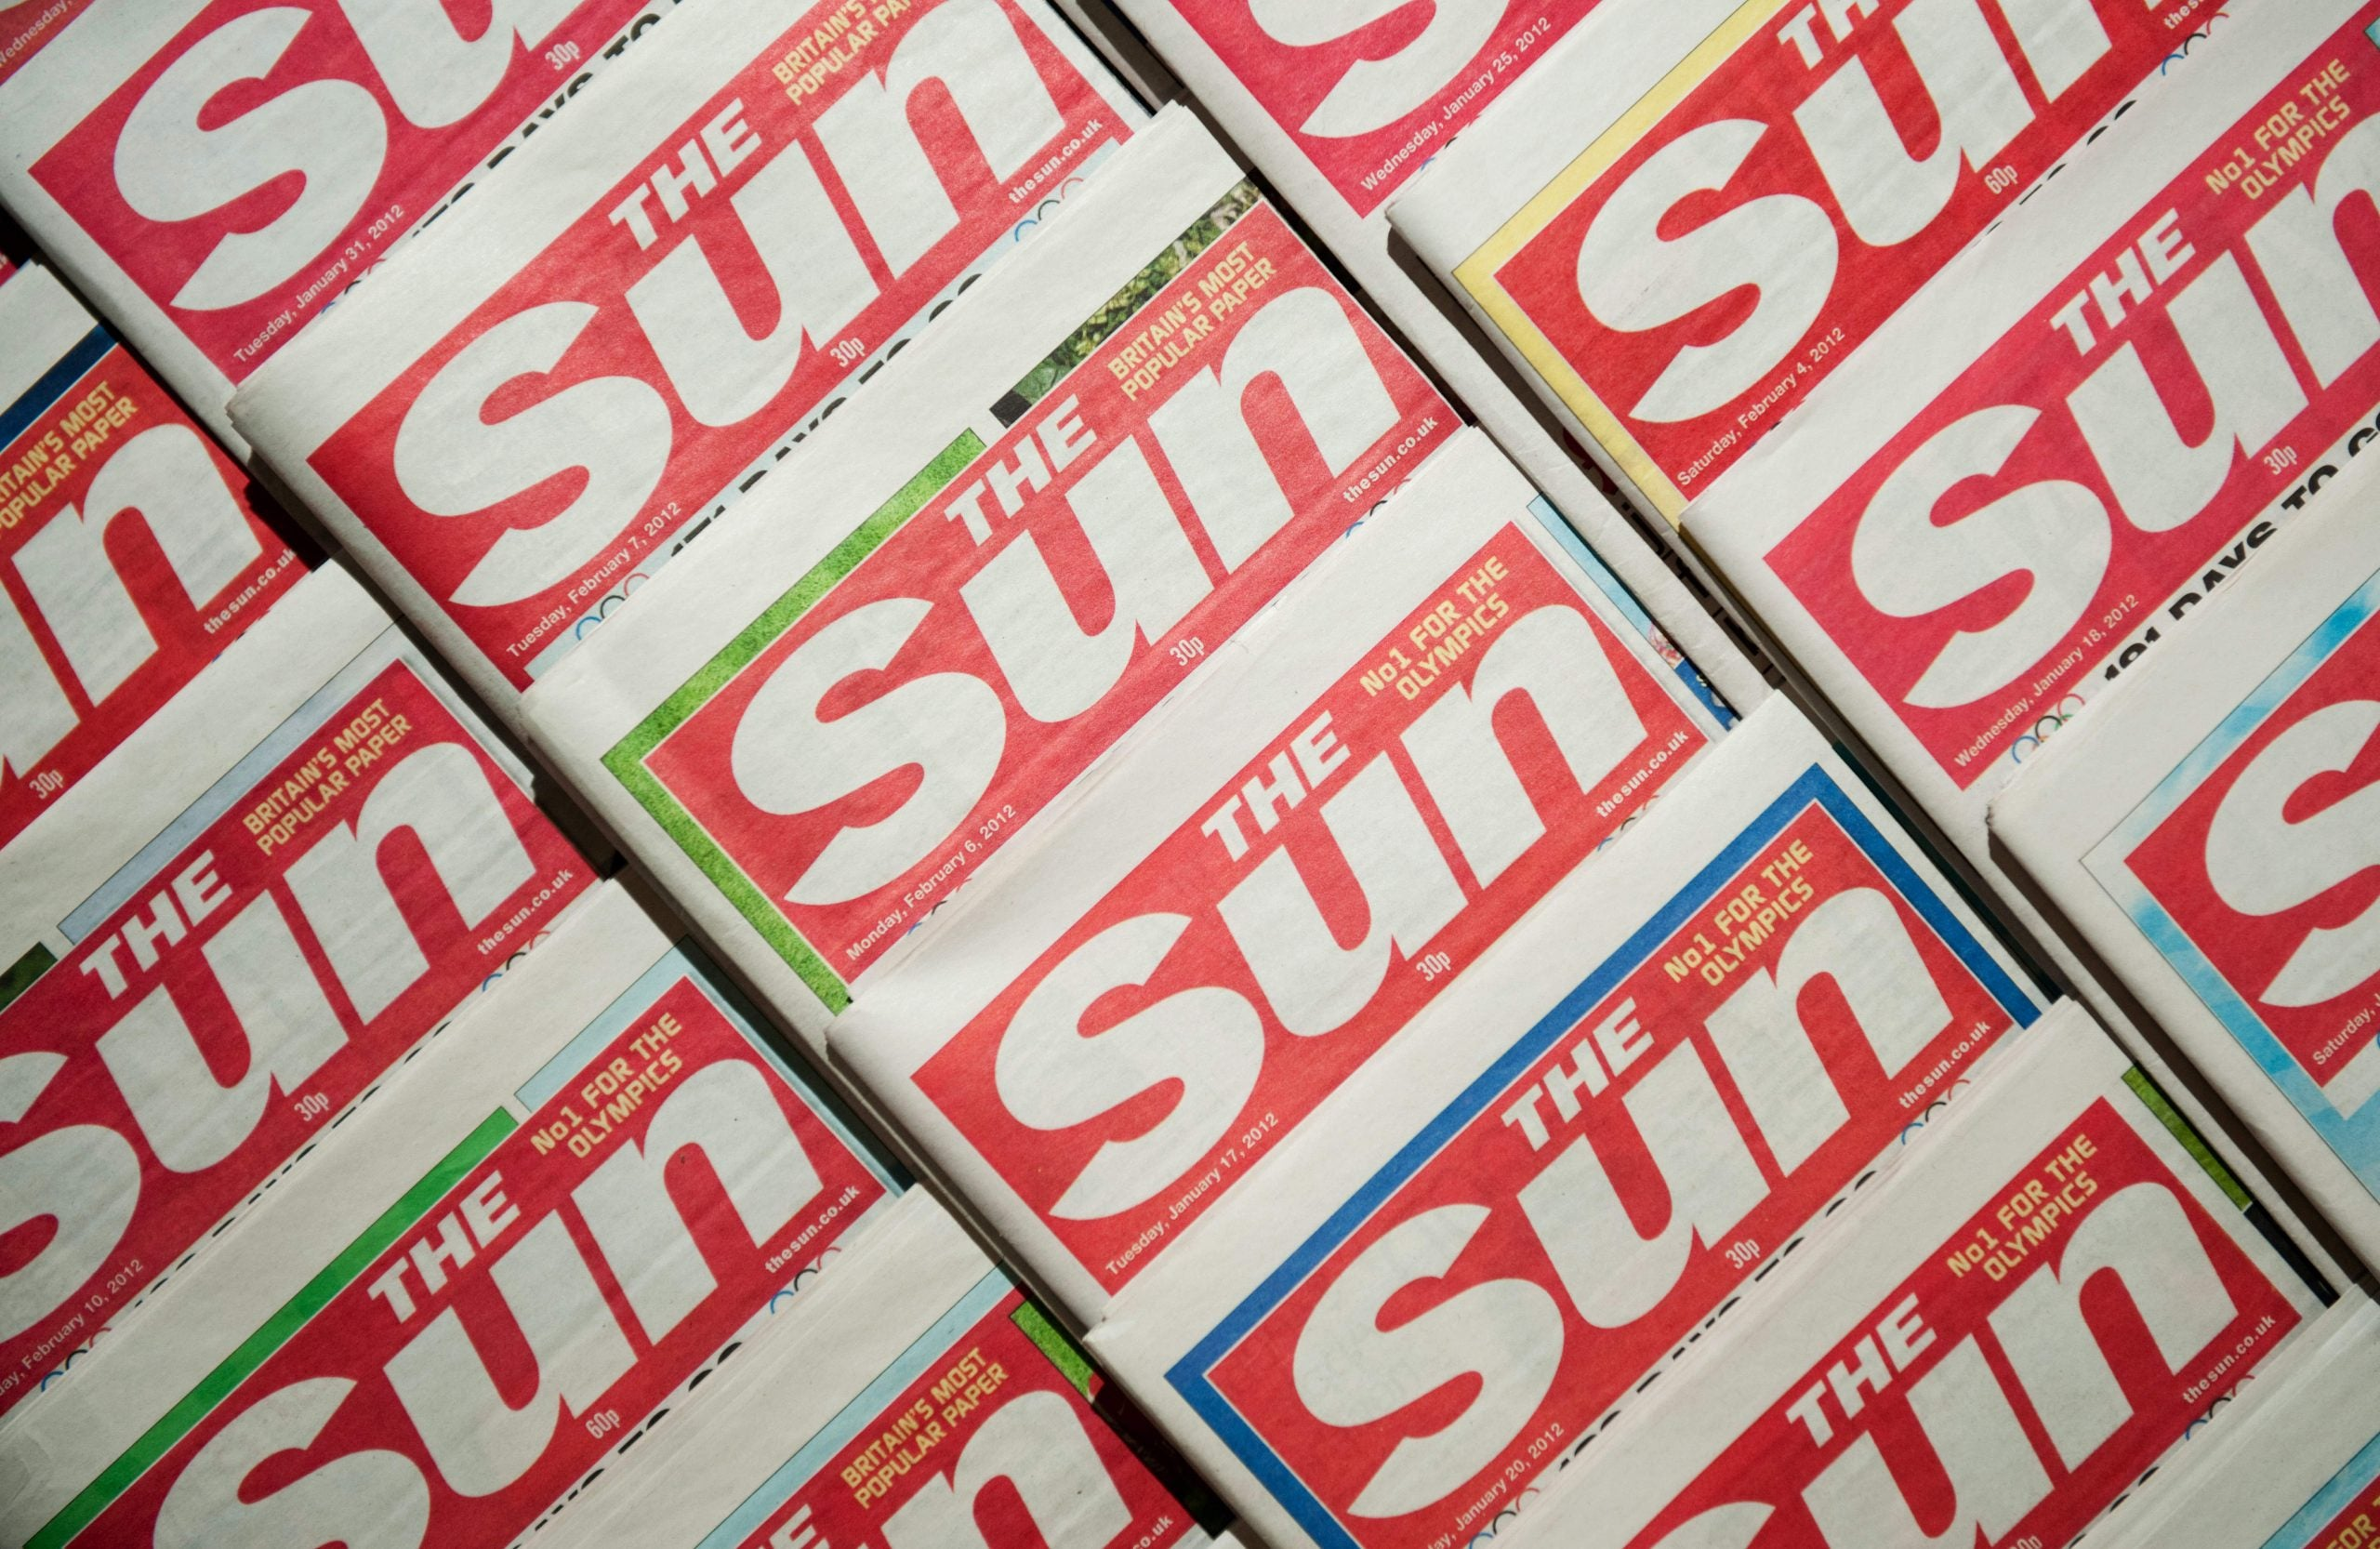 Thanks to social media, ordinary people can now influence elections more than tabloids